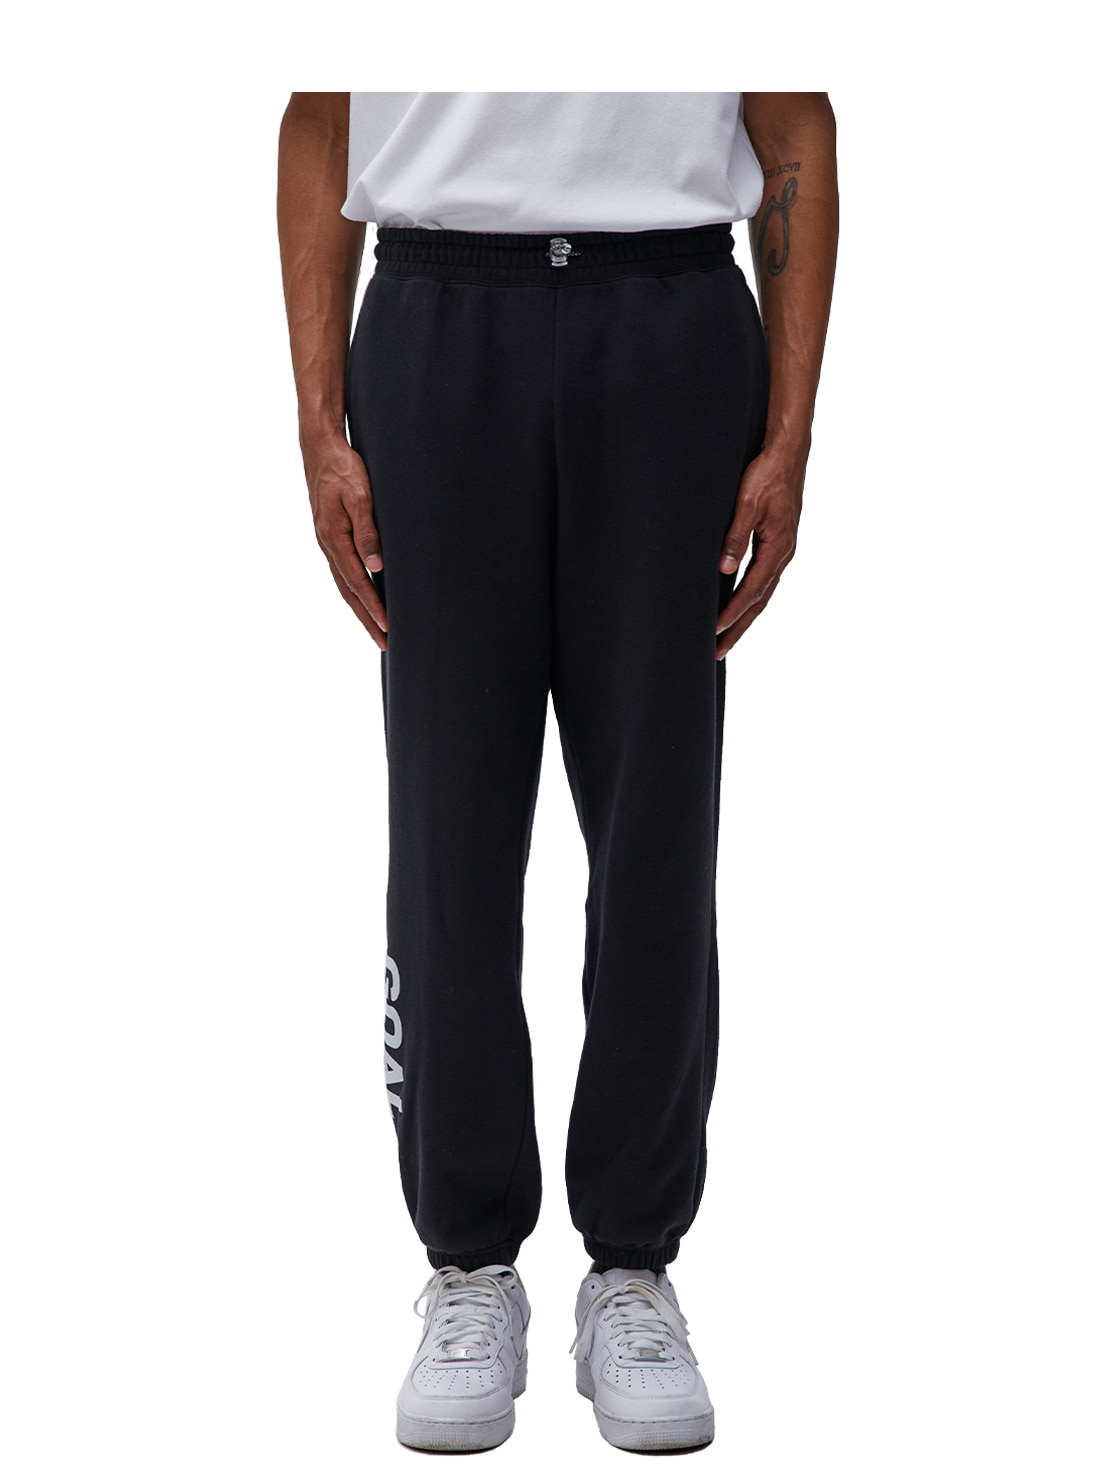 (Sold Out) FLOCKING KNIT JOGGER PANTS - BLACK